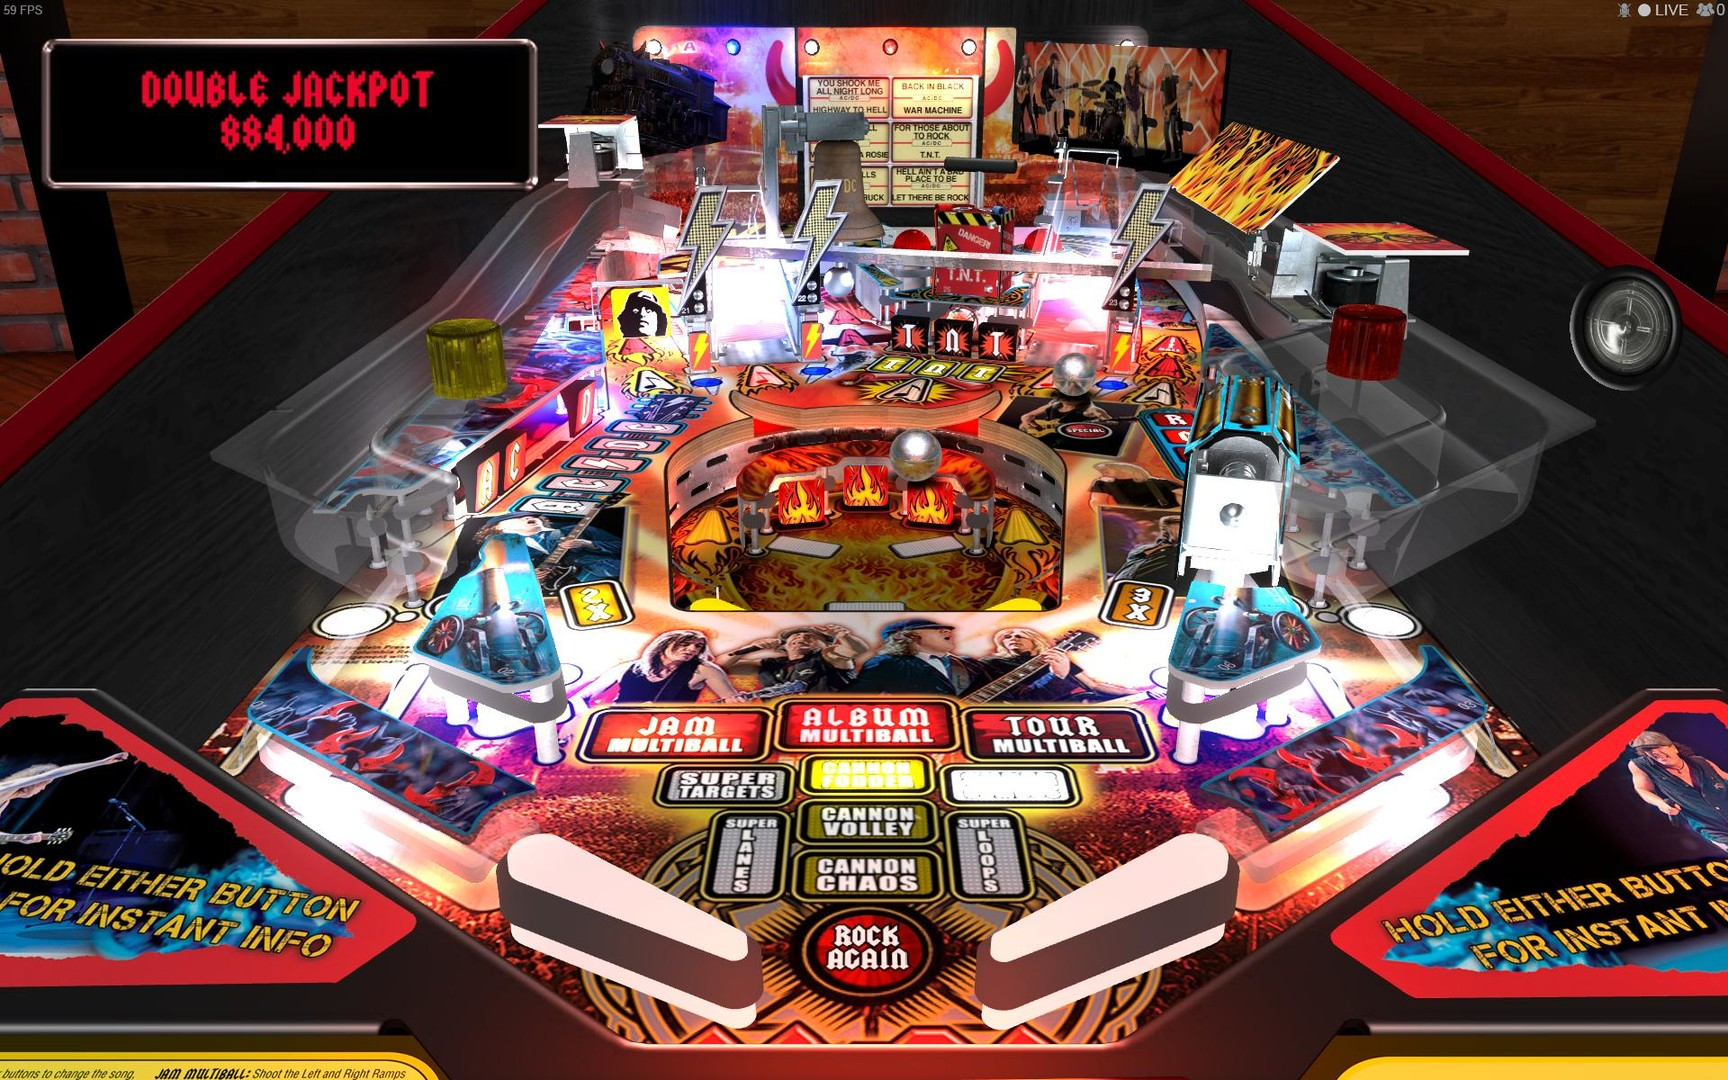 Pro pinball timeshock pc review and full download | old pc gaming.